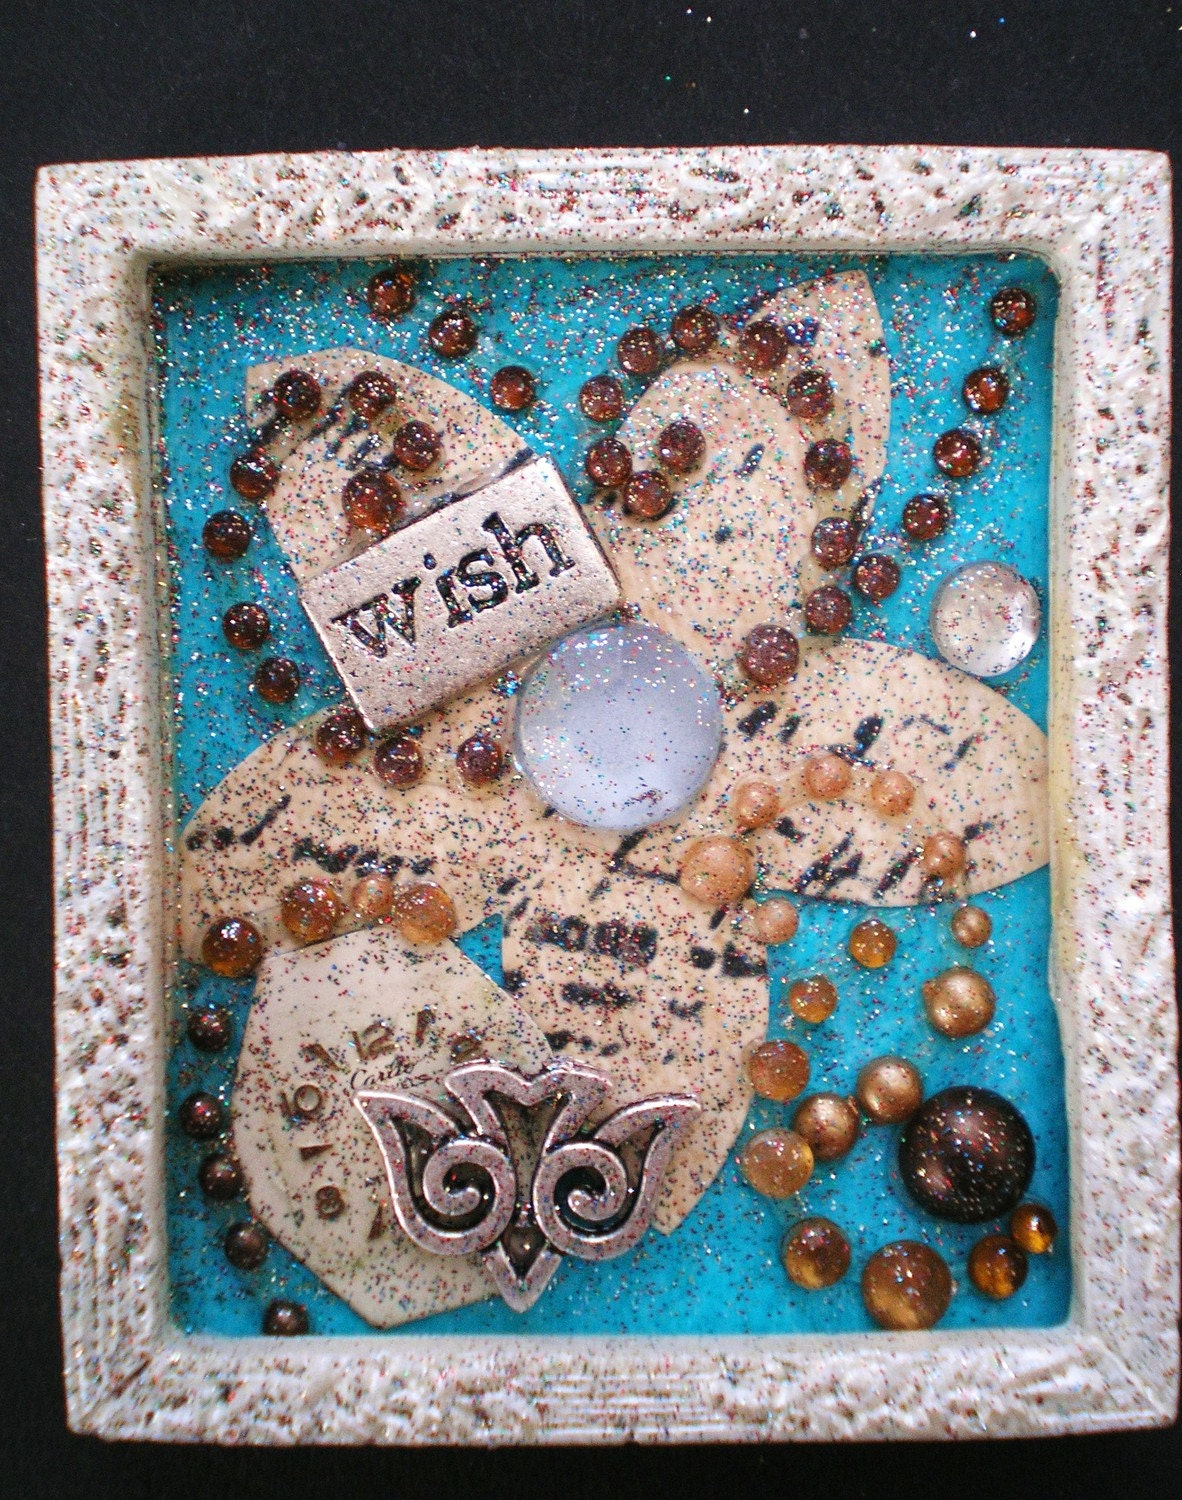 WISH  - Tiny Collage Mixed Media OOAK Framed Signed with Beads Silver Bird Charm Watch Parts